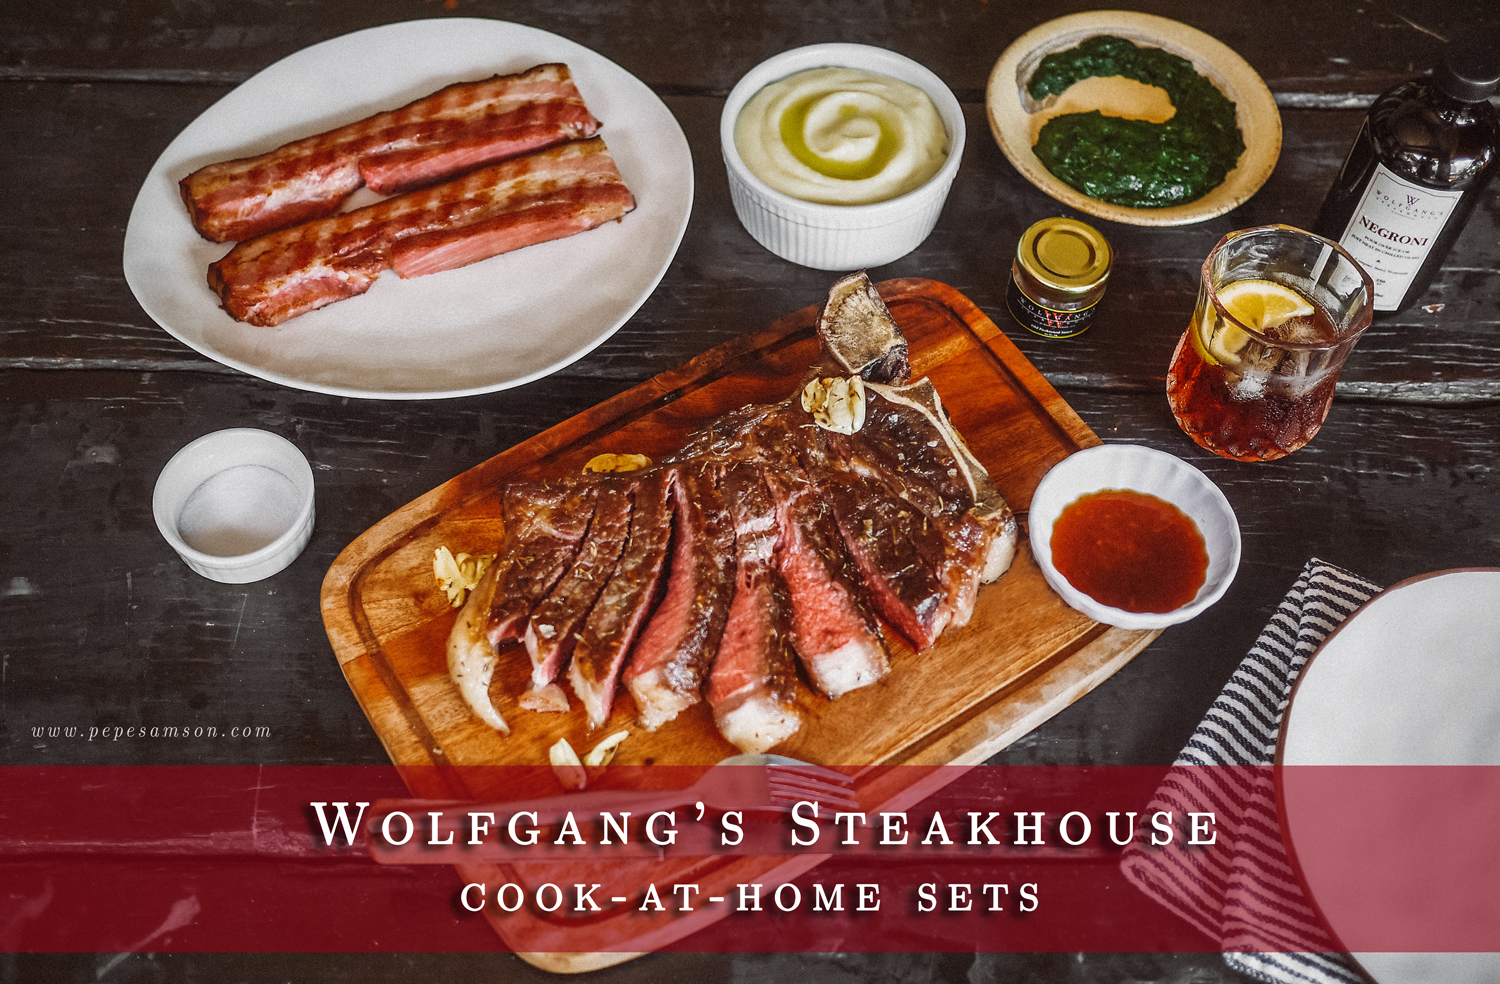 Treat Dad to This Cook-at-Home Set from Wolfgang's Steakhouse on Father's Day